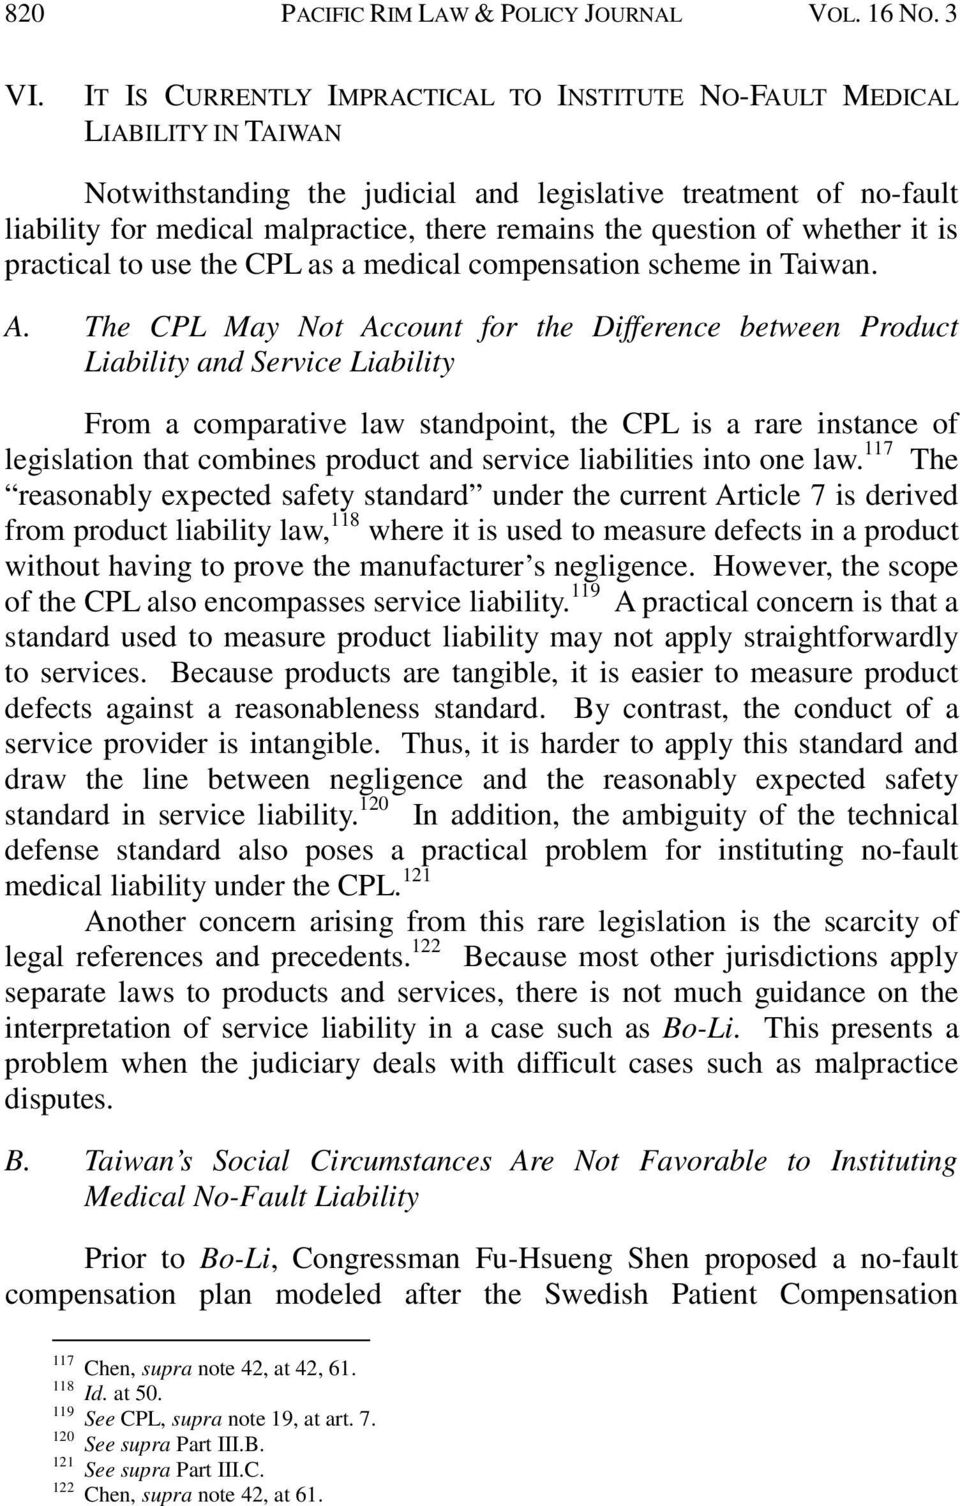 question of whether it is practical to use the CPL as a medical compensation scheme in Taiwan. A.